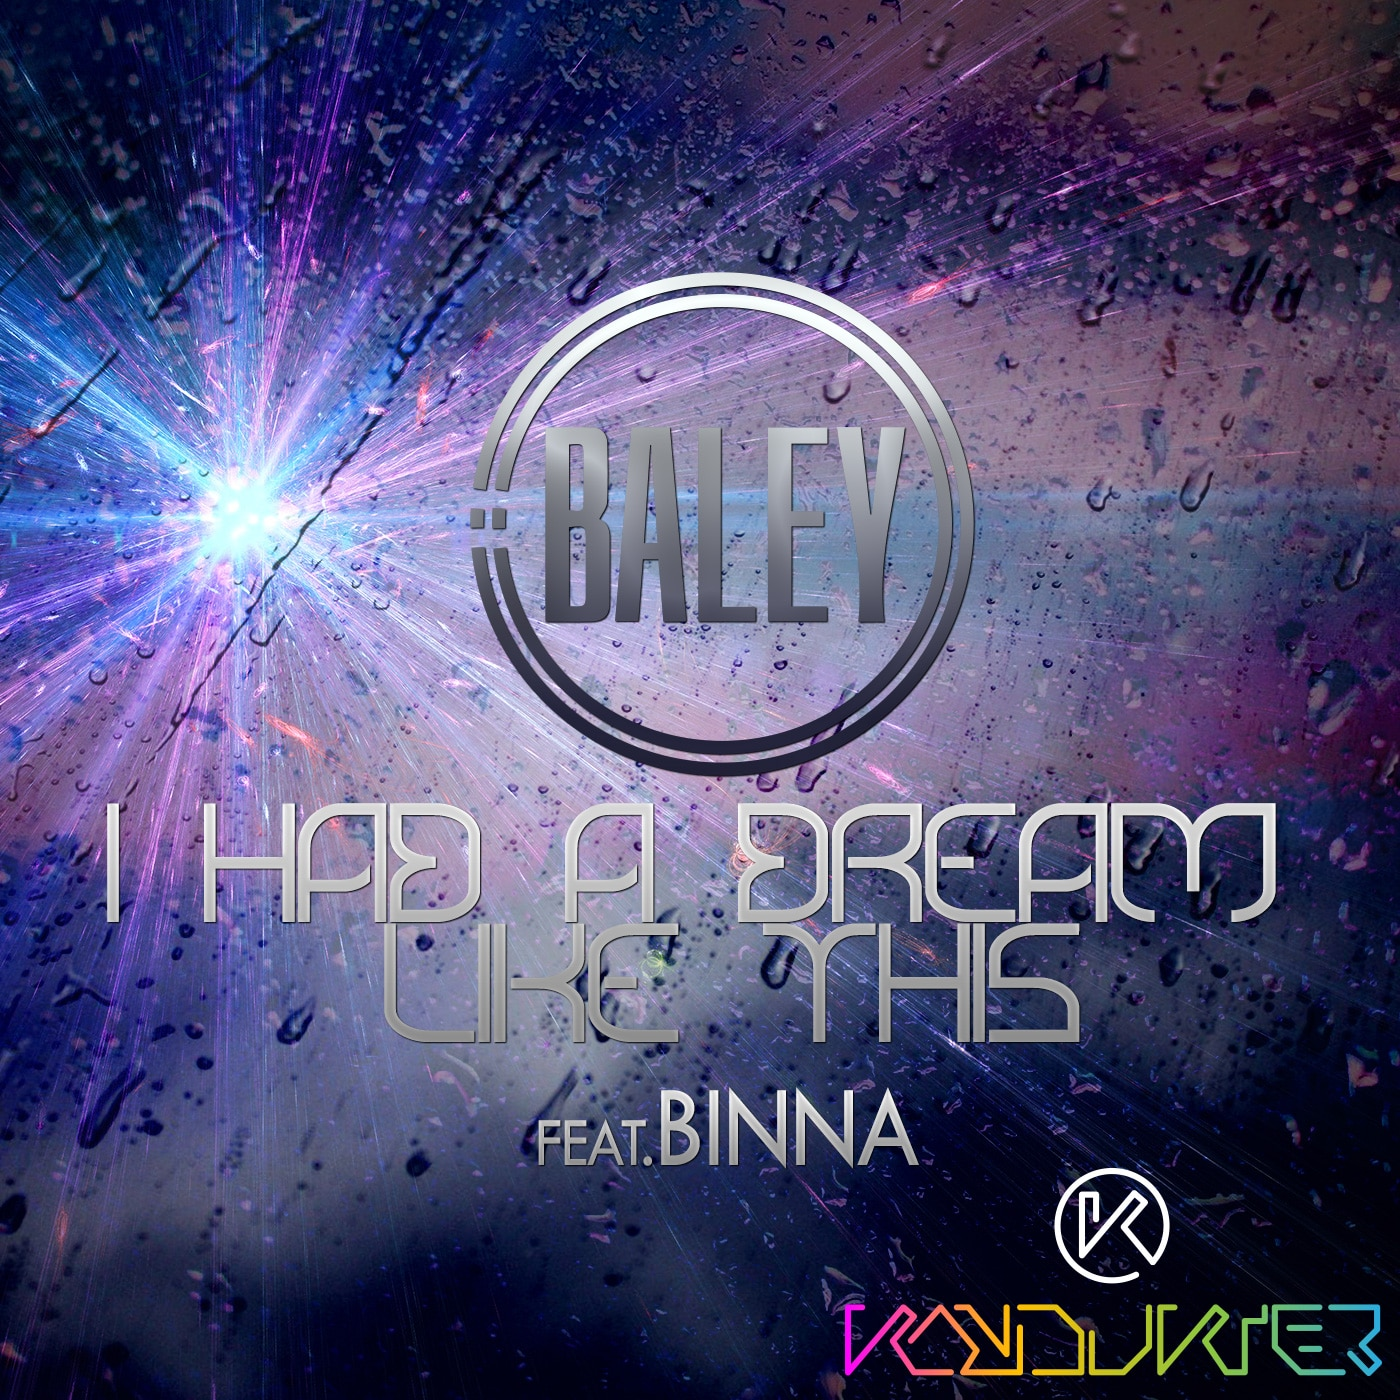 Baley - I Had a Dream Like This - feat Binna